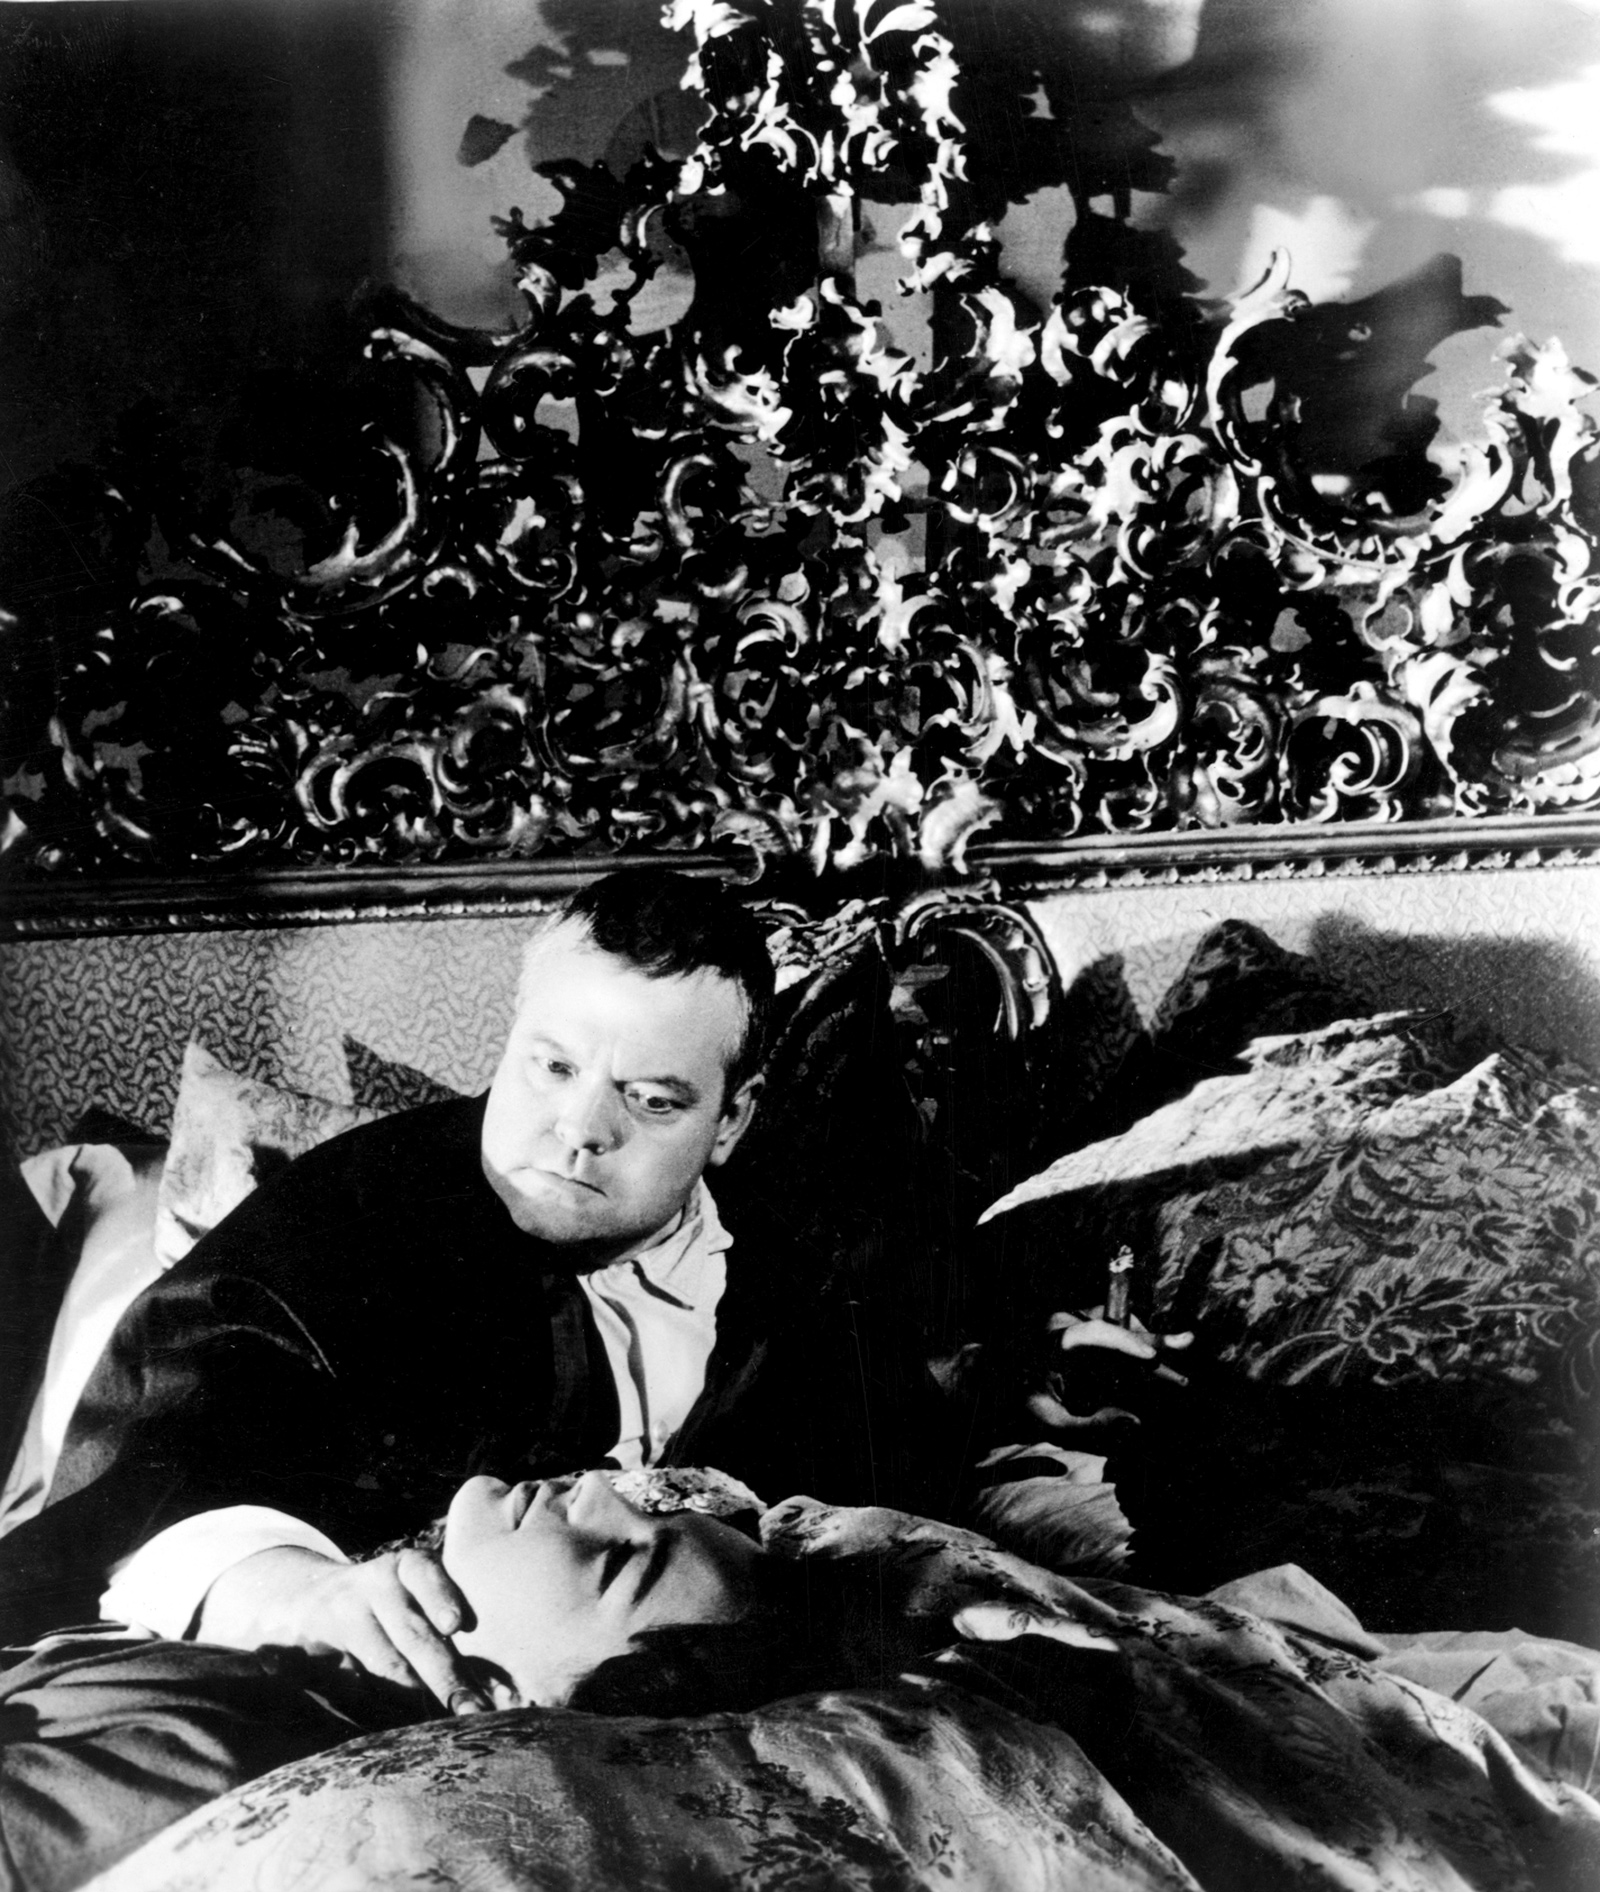 Orson Welles and Romy Schneider in The Trial, 1962